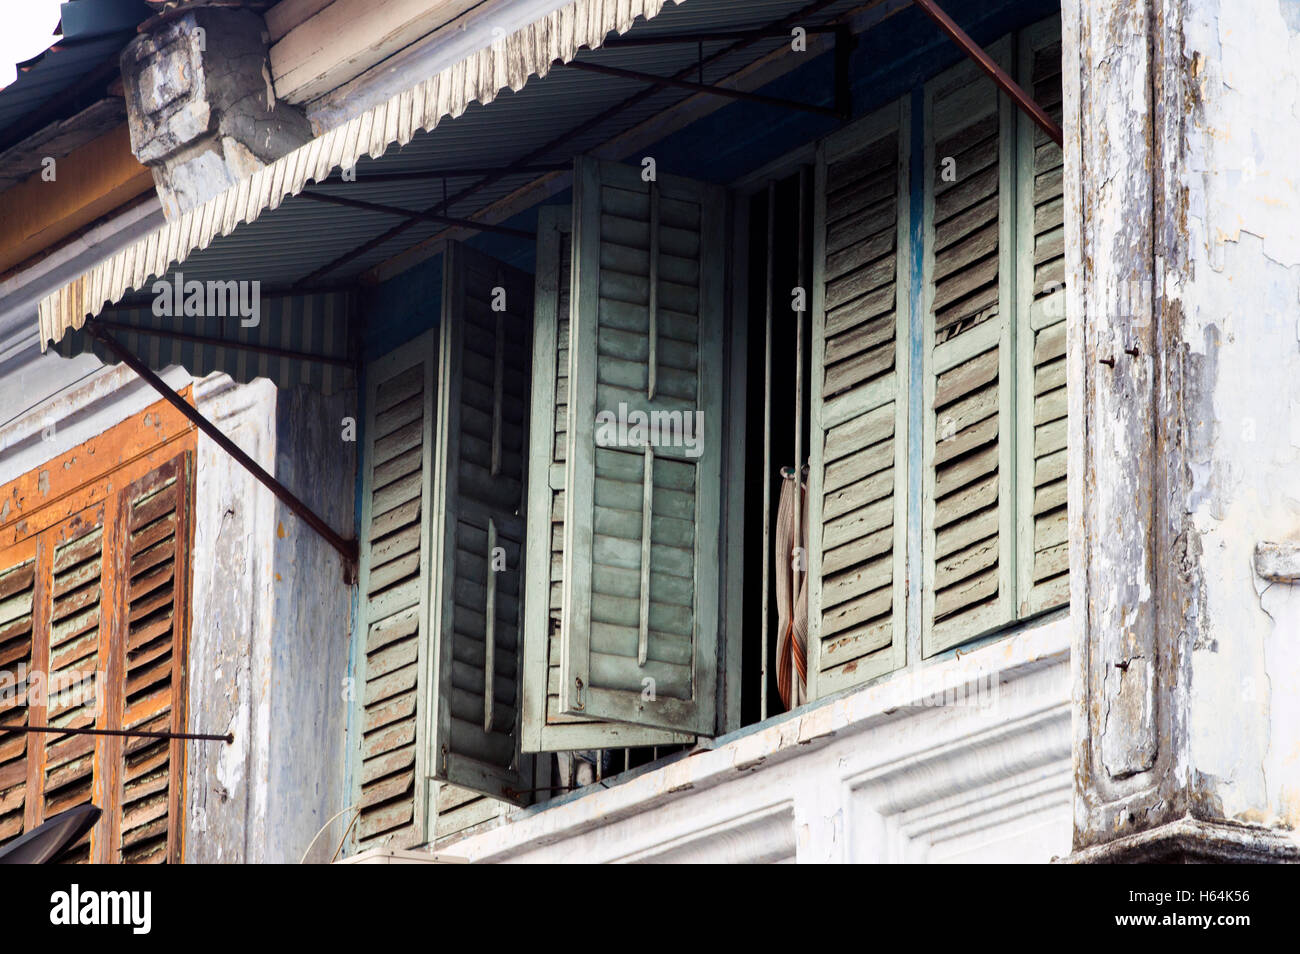 Upper floor terraxce house windows little india georgetown penang malaysia